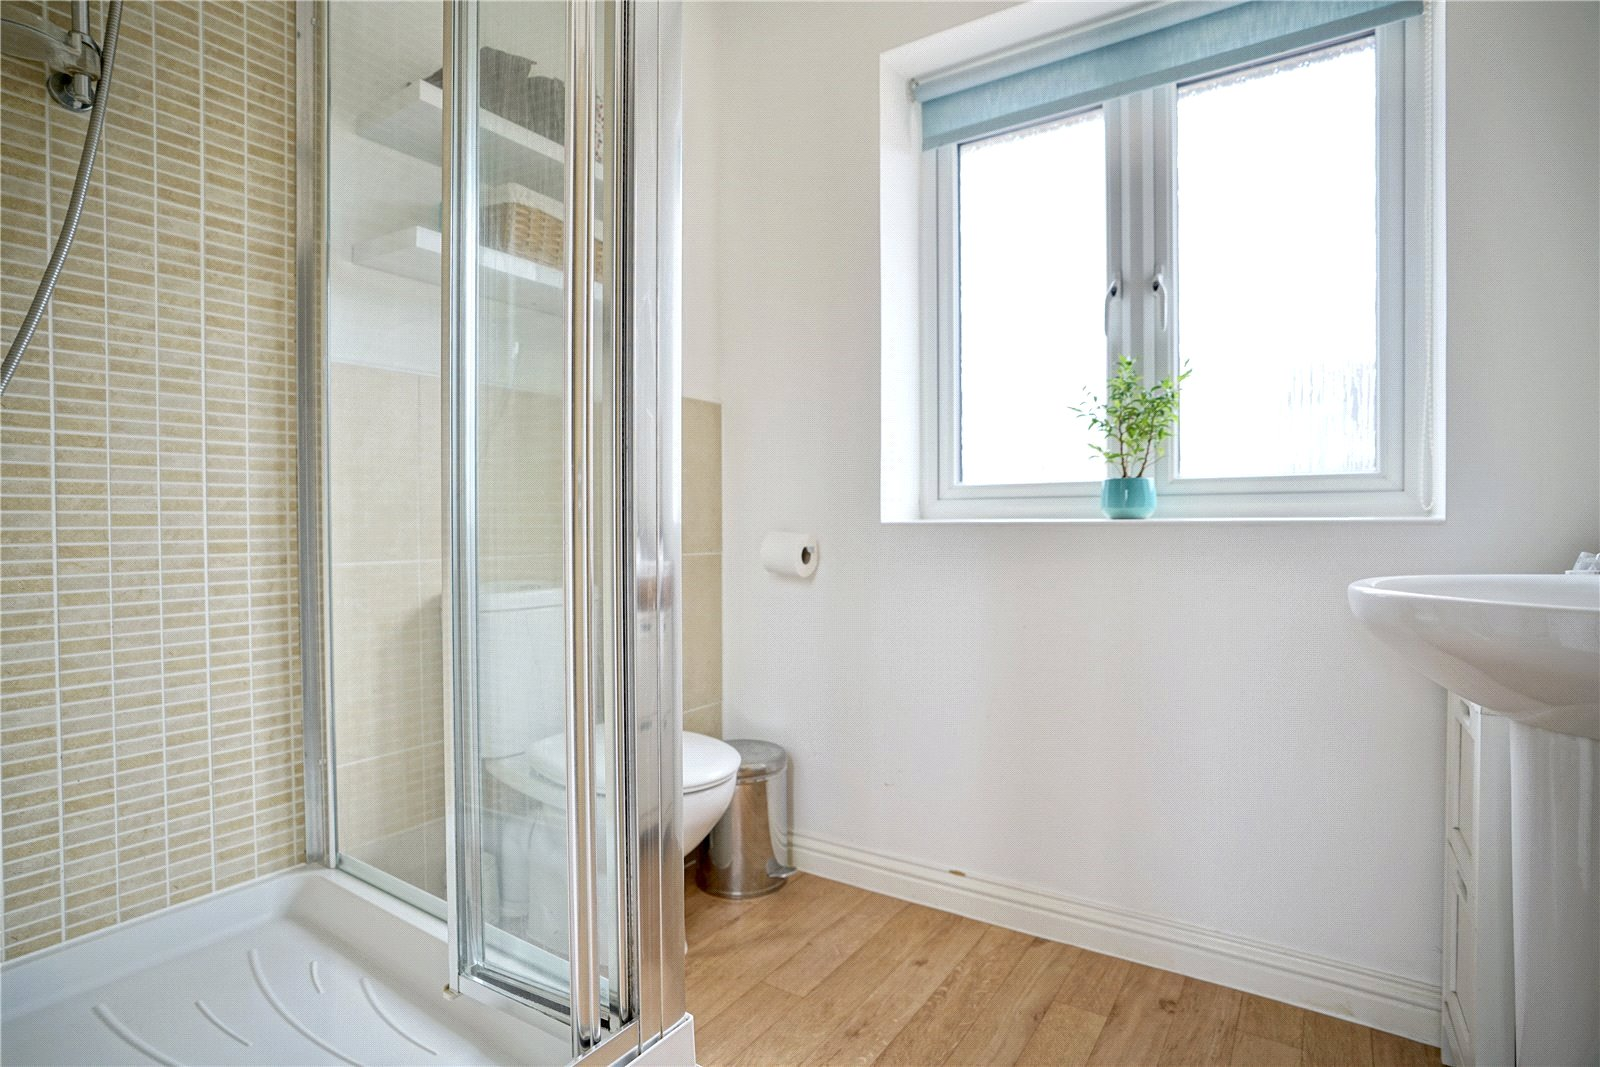 3 bed house for sale in St. Ives, PE27 5DL 6